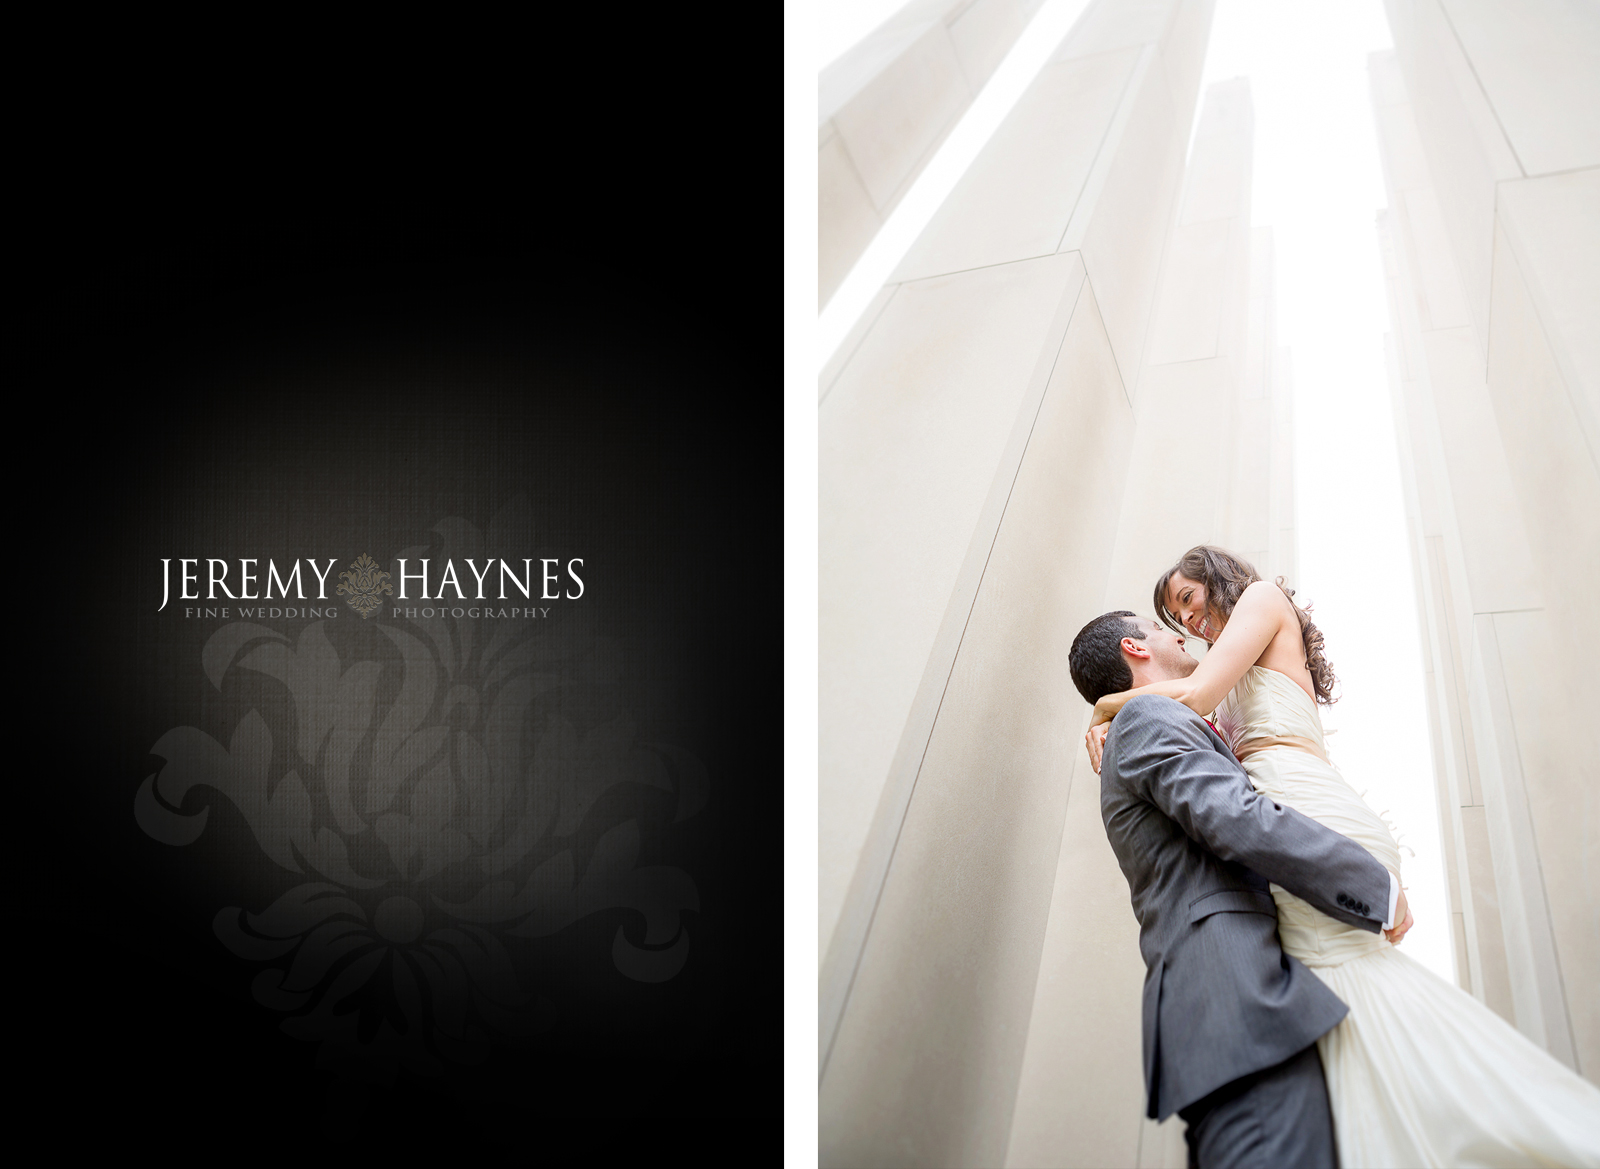 the-commons-columbus-stunning-couple-wedding-photos-jeremy-haynes-photography.jpg